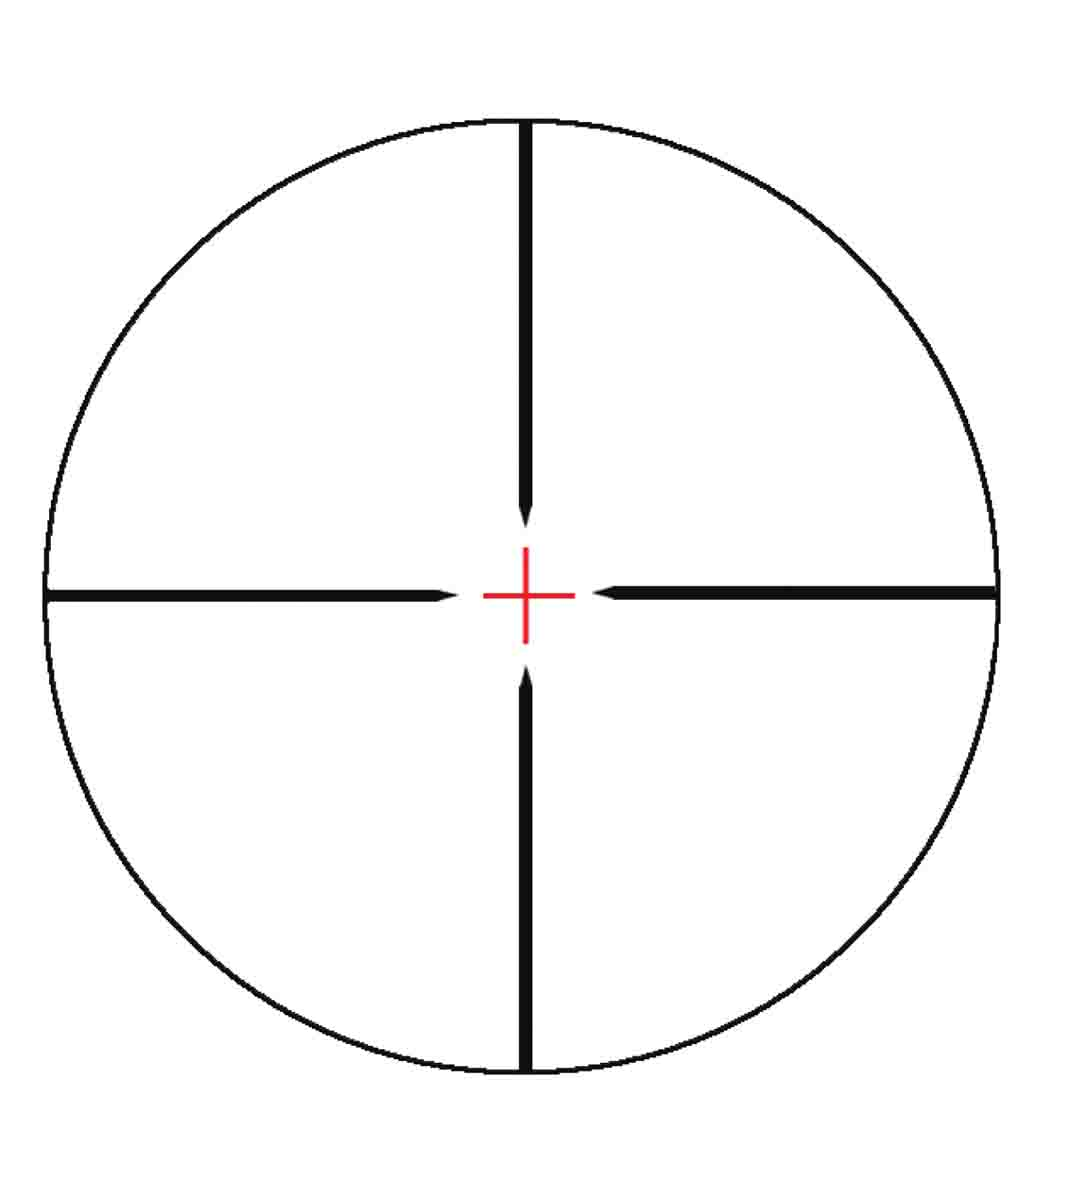 The Konus 30/30 reticle features a lighted cross at its center.